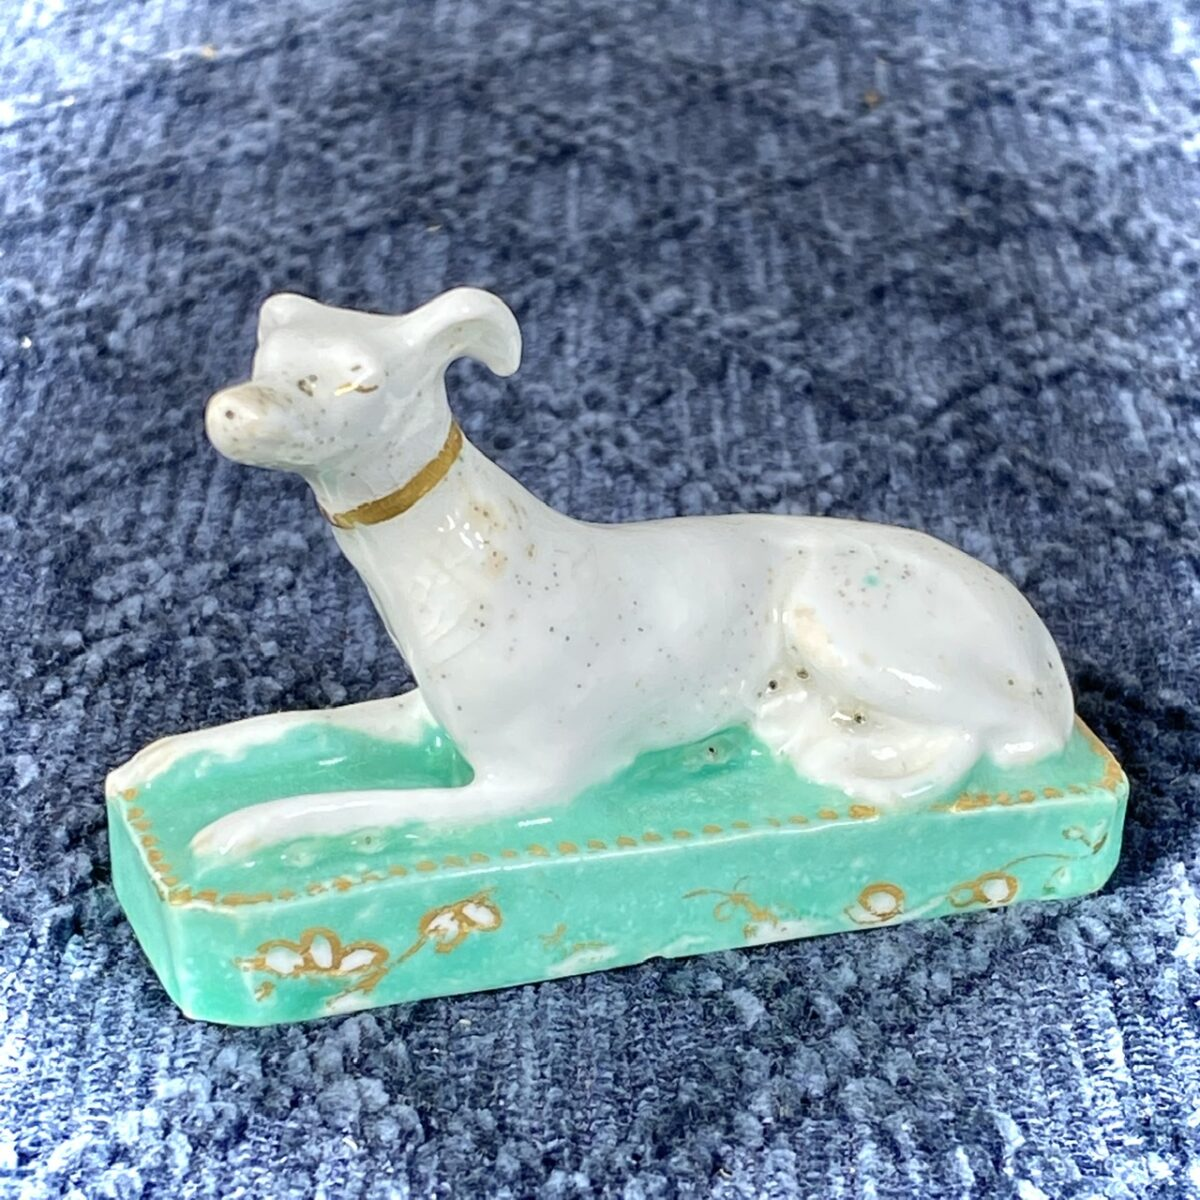 English Porcelain Miniature Model of a Whippet.